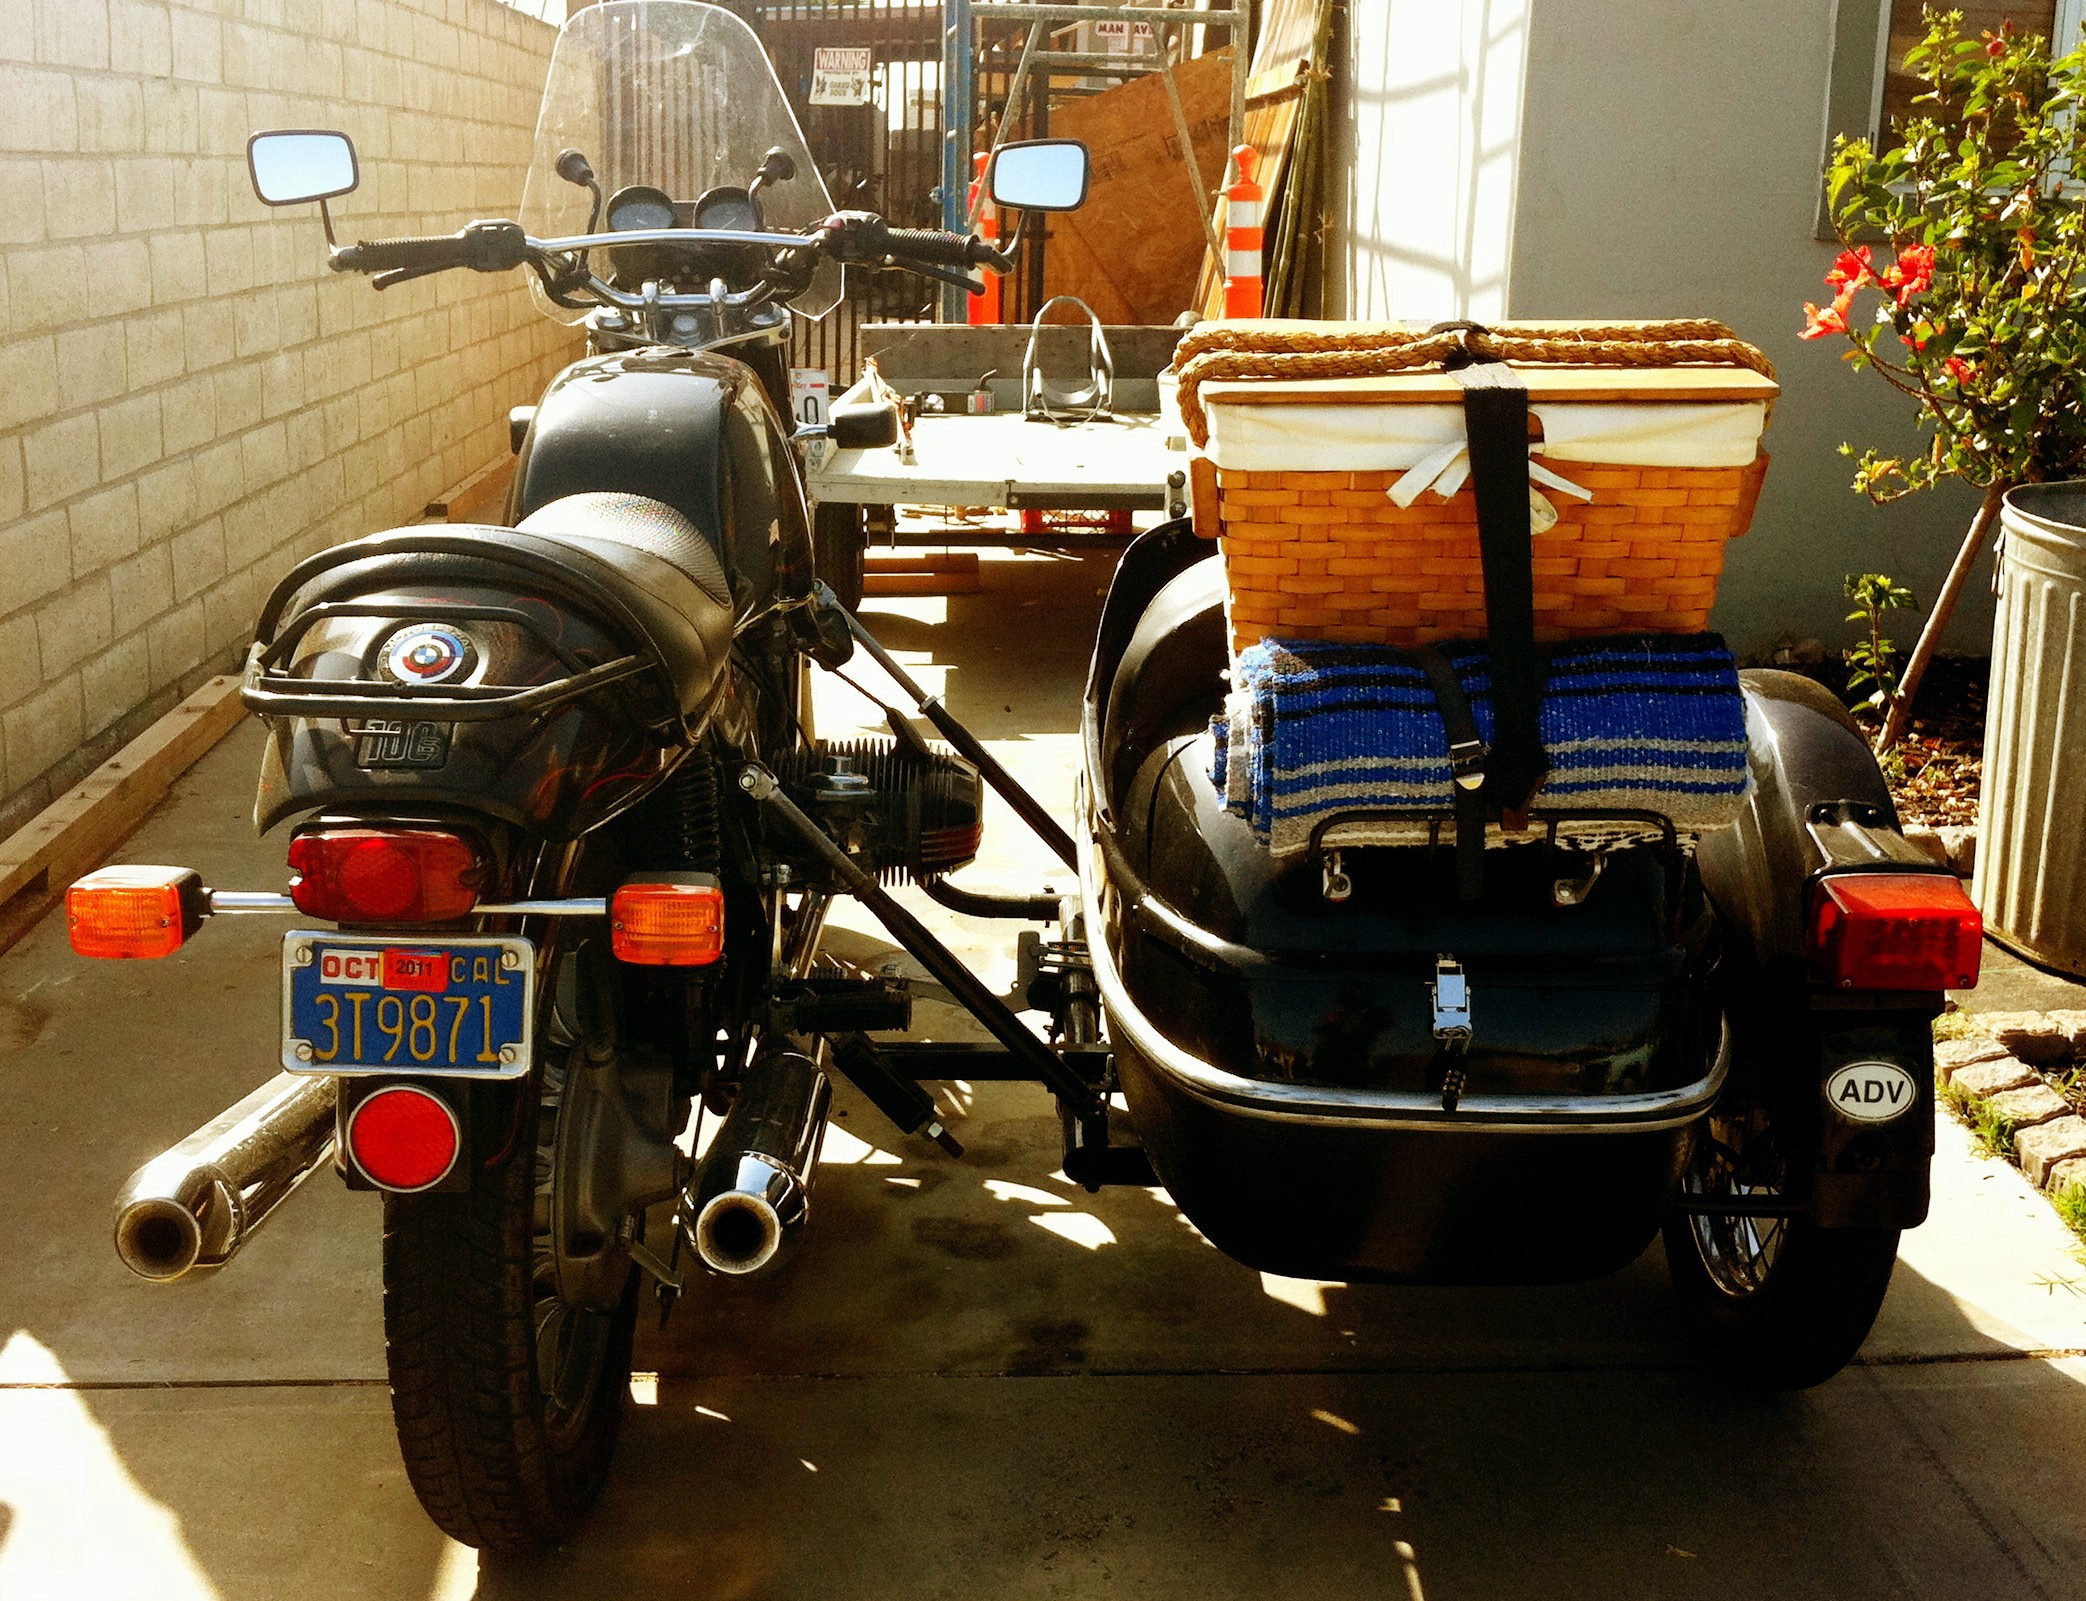 """[Sidecar](https://www.flickr.com/photos/23291498@N04/5539212408/)"" by [cireremarc](https://www.flickr.com/photos/23291498@N04/) is licensed under [CC BY 2.0](https://creativecommons.org/licenses/by/2.0/)"